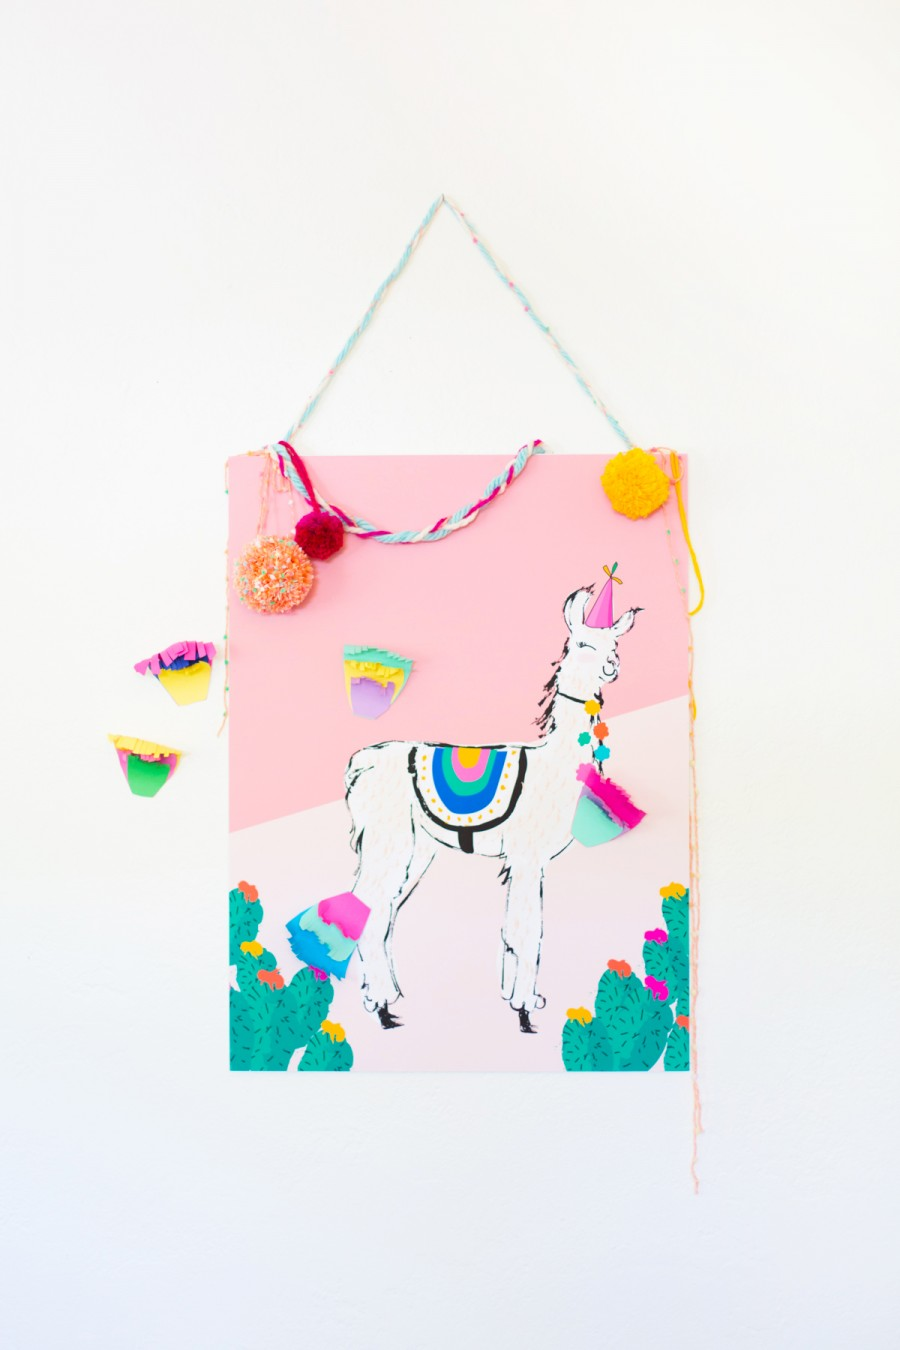 pin-the-tail-on-the-llama-game-4-450x6752x